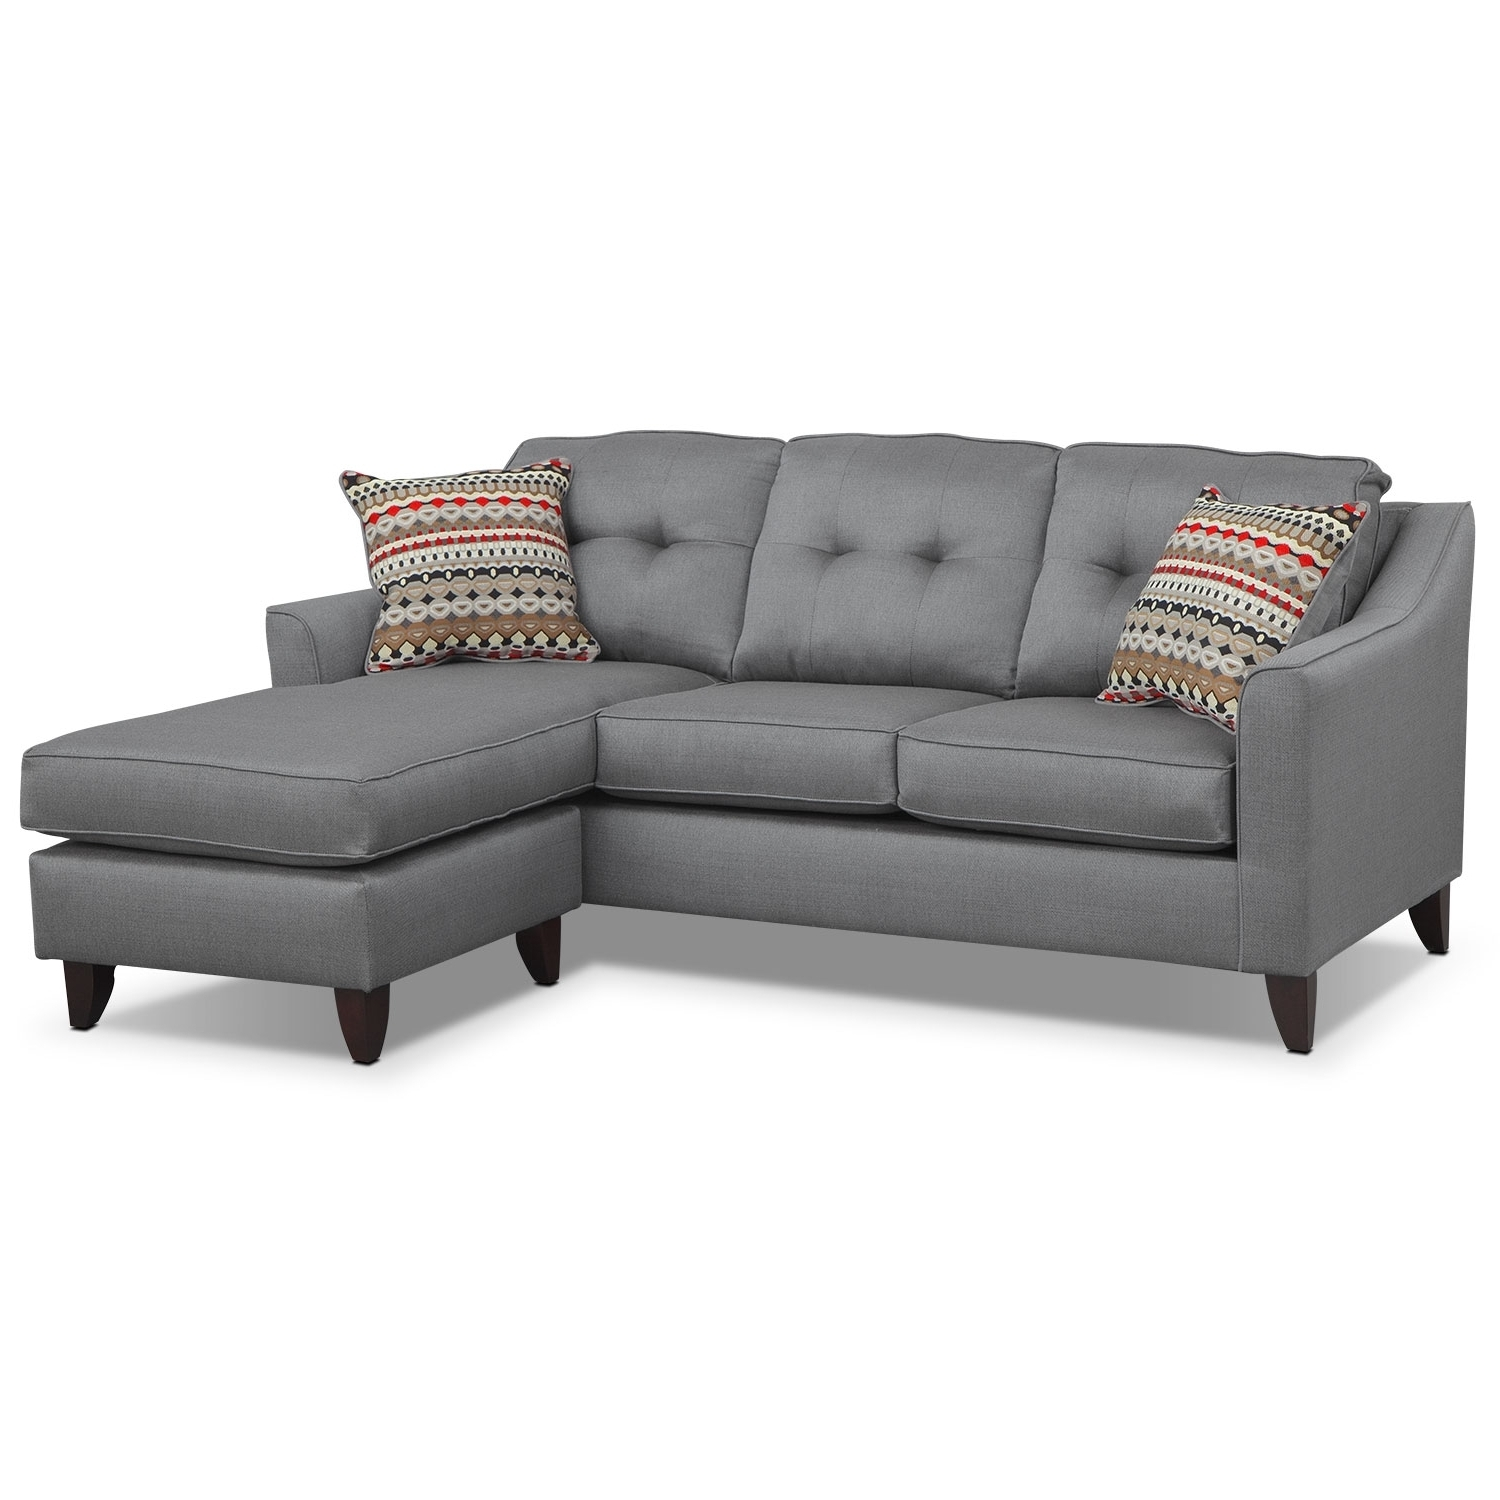 Most Popular Grey Sofa Chaises With Regard To Sofa Design Ideas: Dark Couch Grey Sofa Chaise Light Design Light (View 8 of 15)